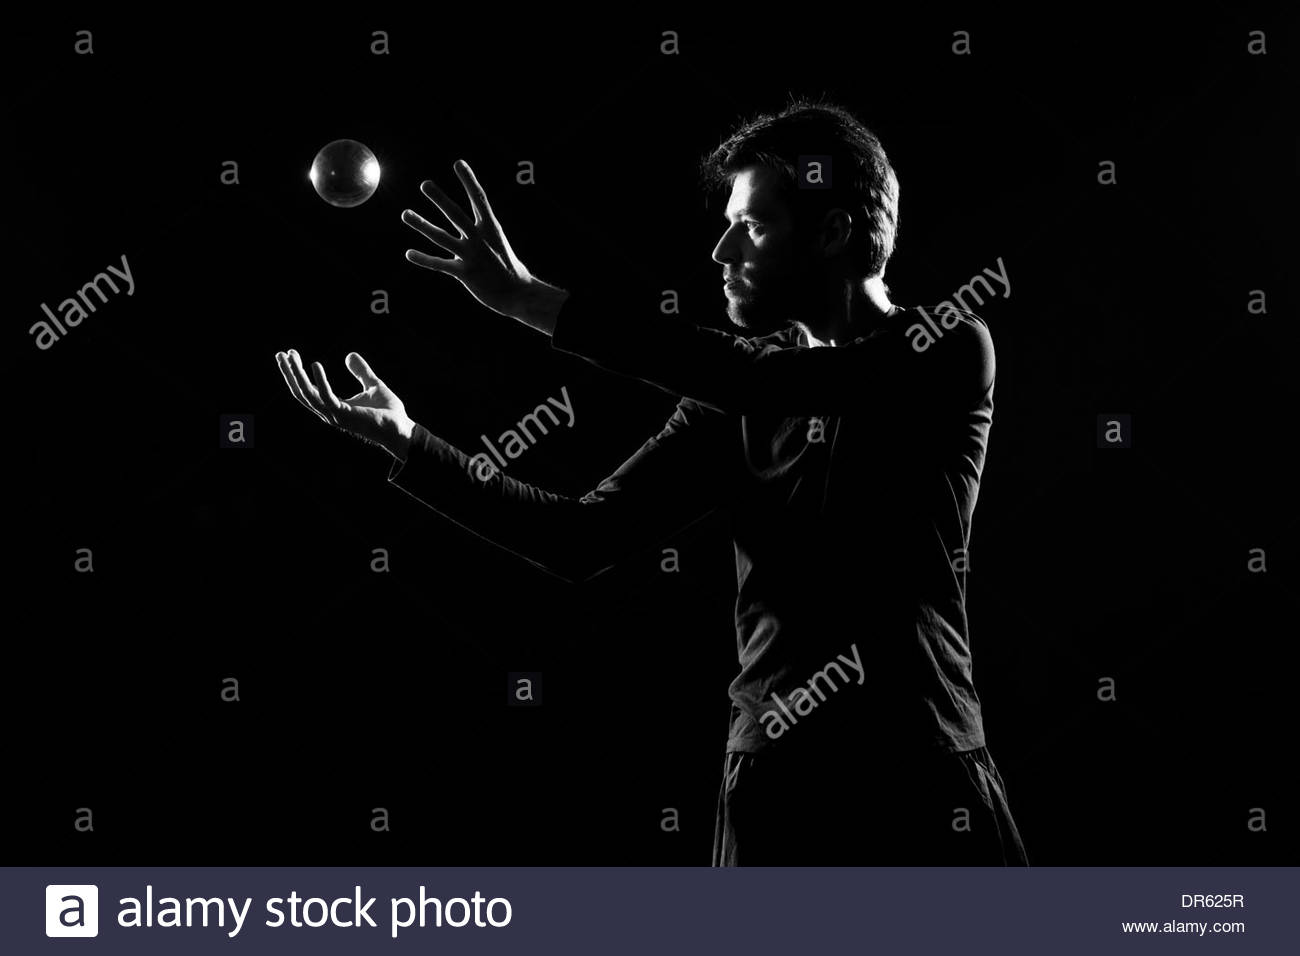 Man juggling with crystal ball before black background - Stock Image